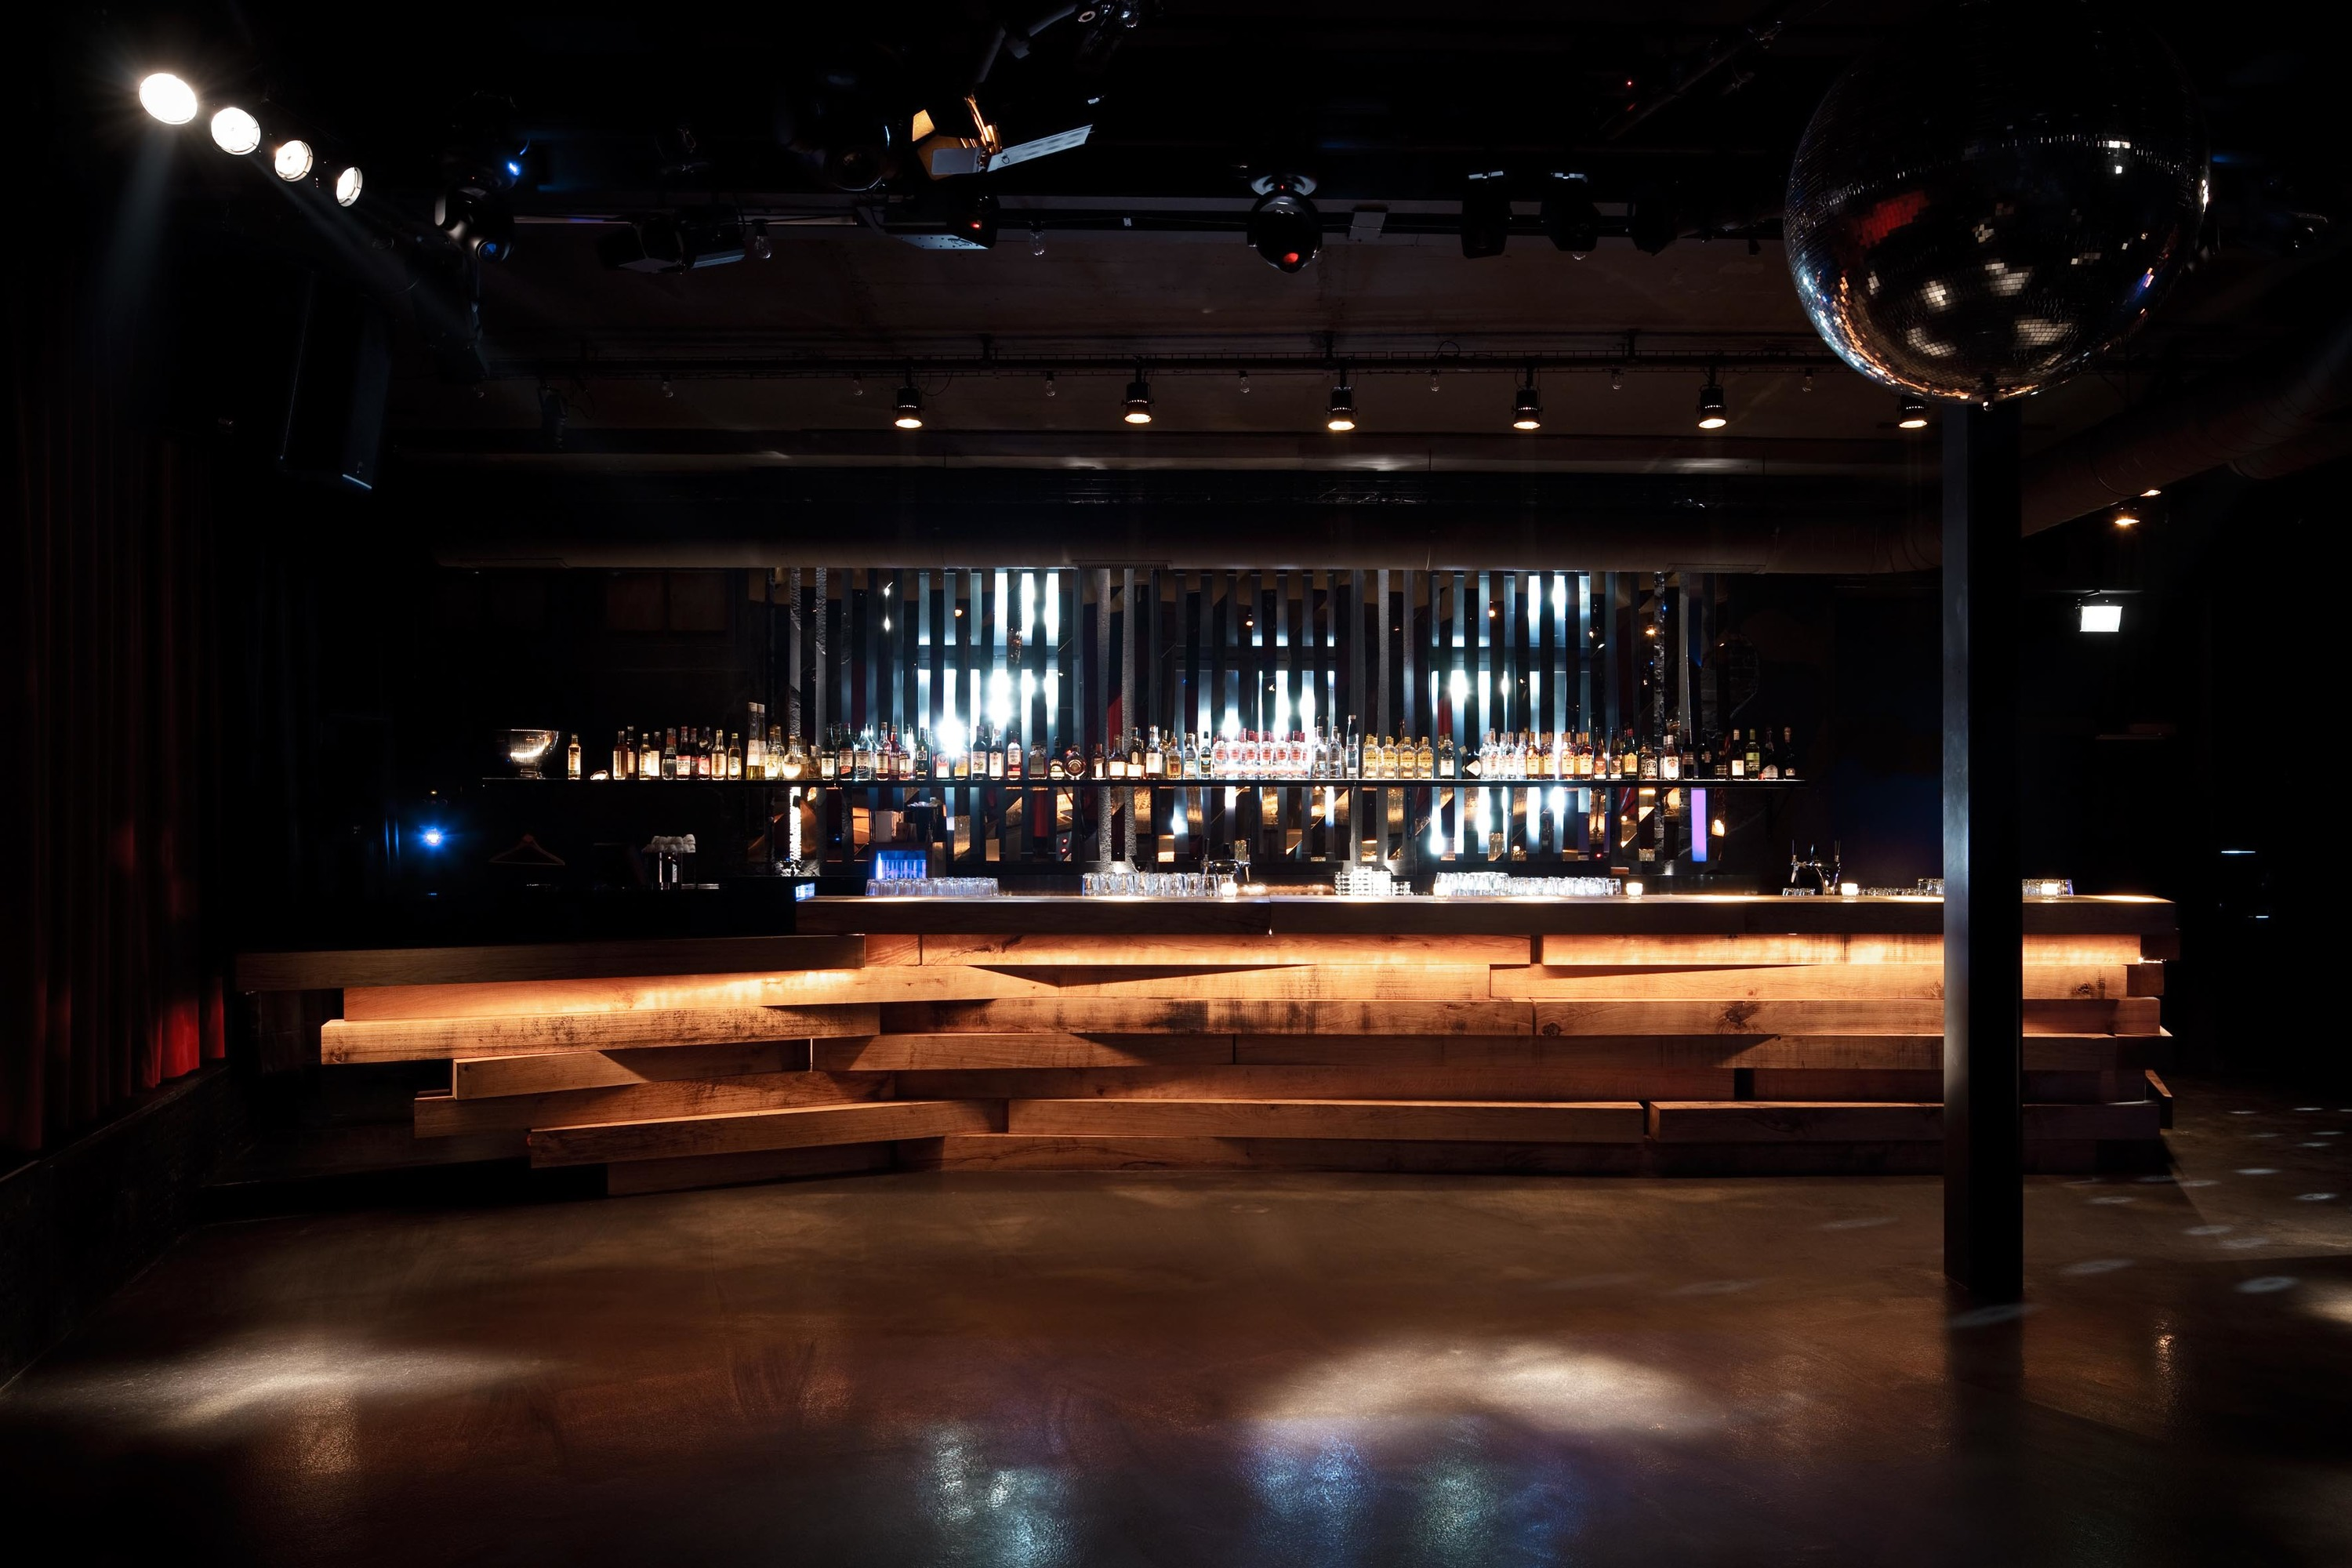 Exil is a club and concert venue in Zurich